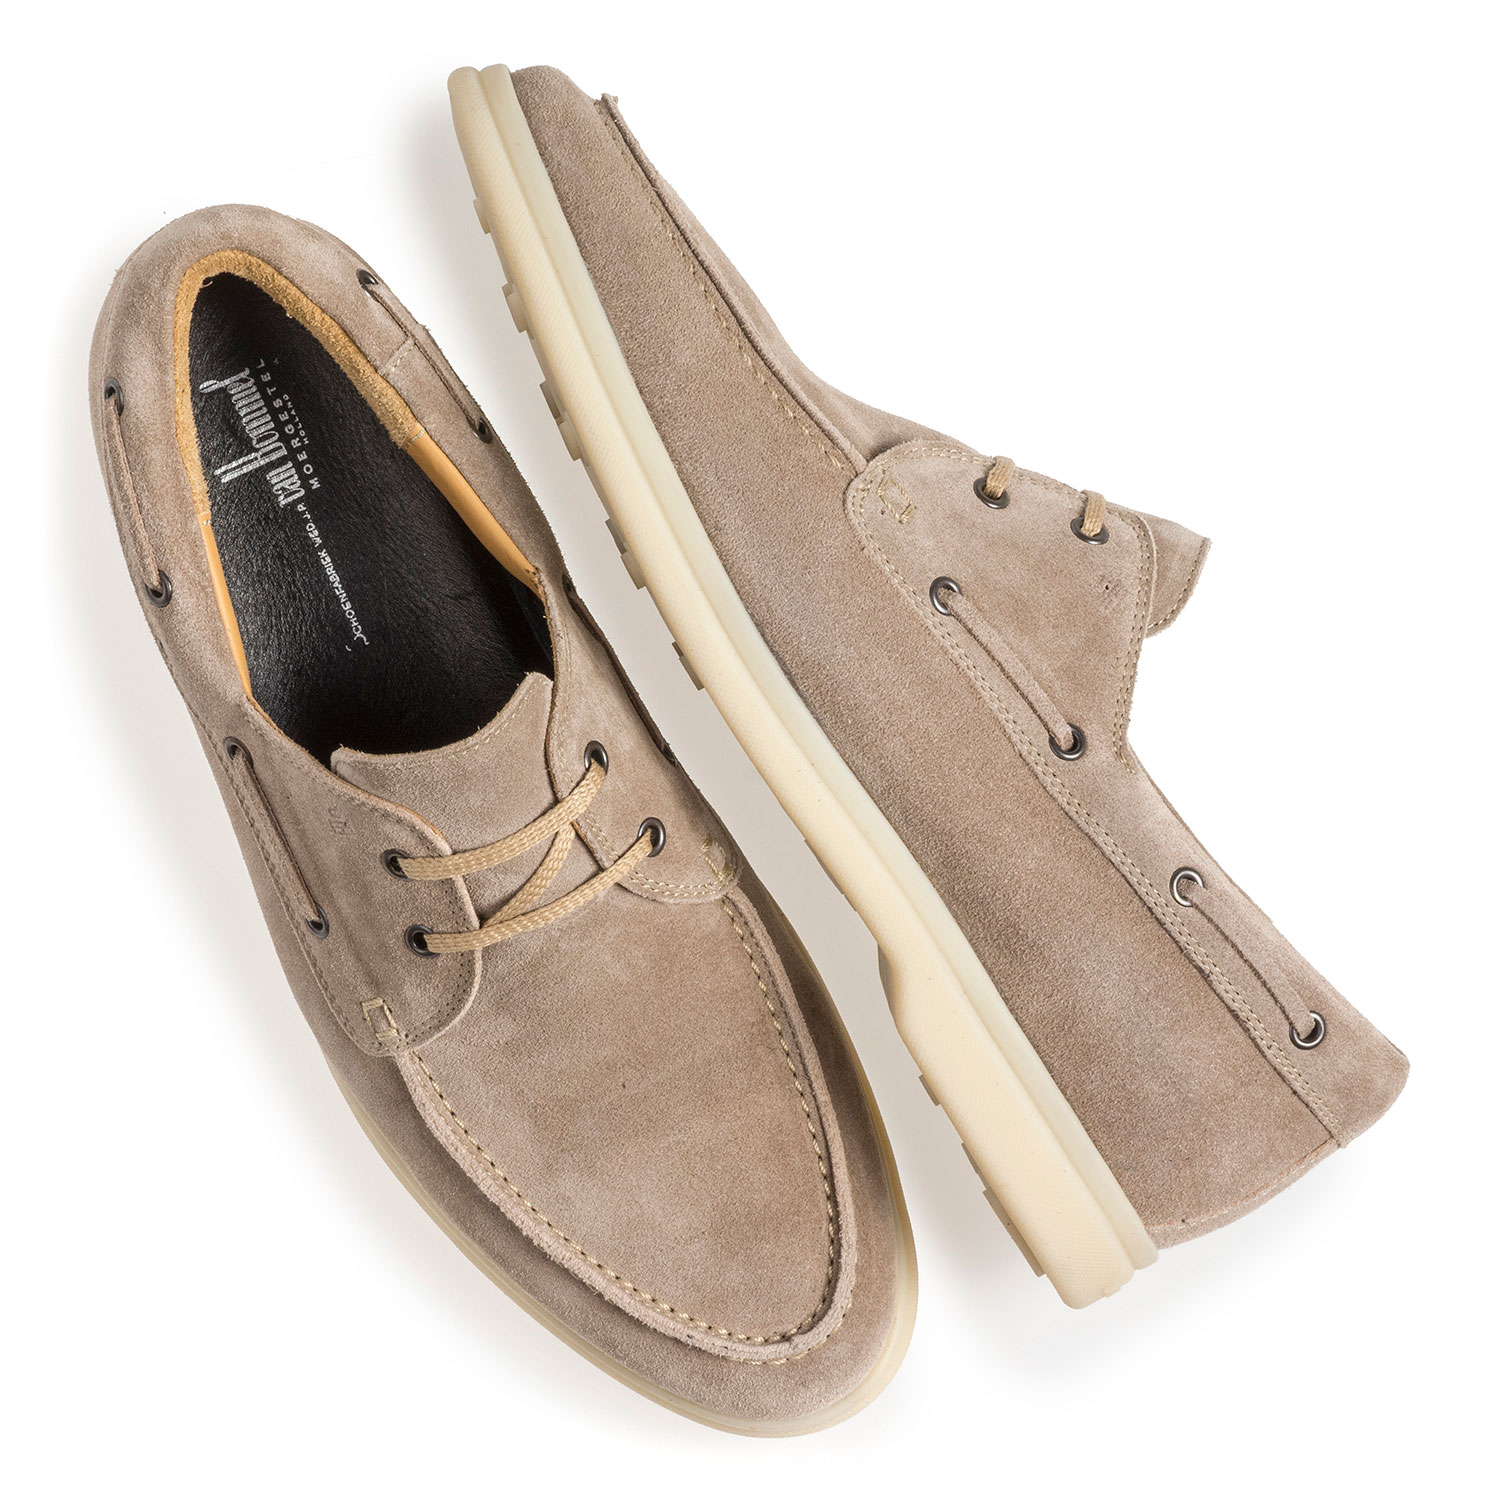 18205/03 - Beige suede leather boat shoe